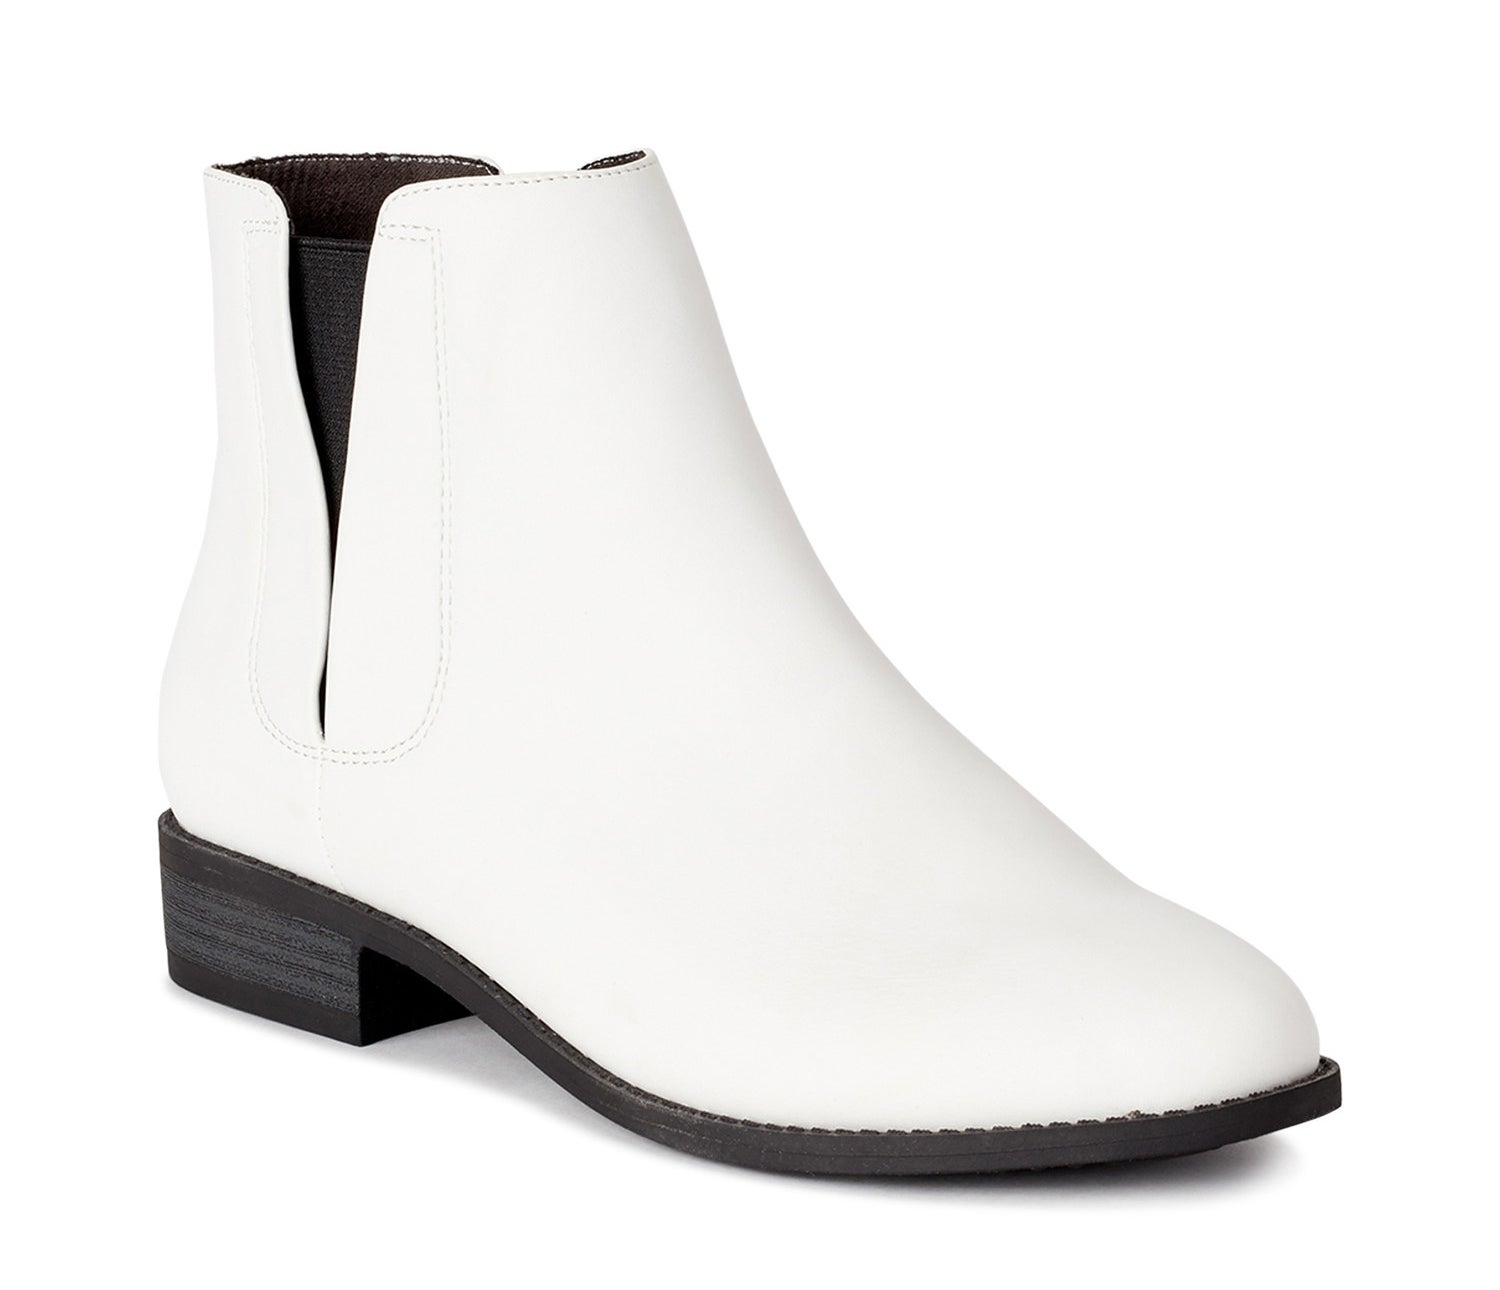 A white ankle boot